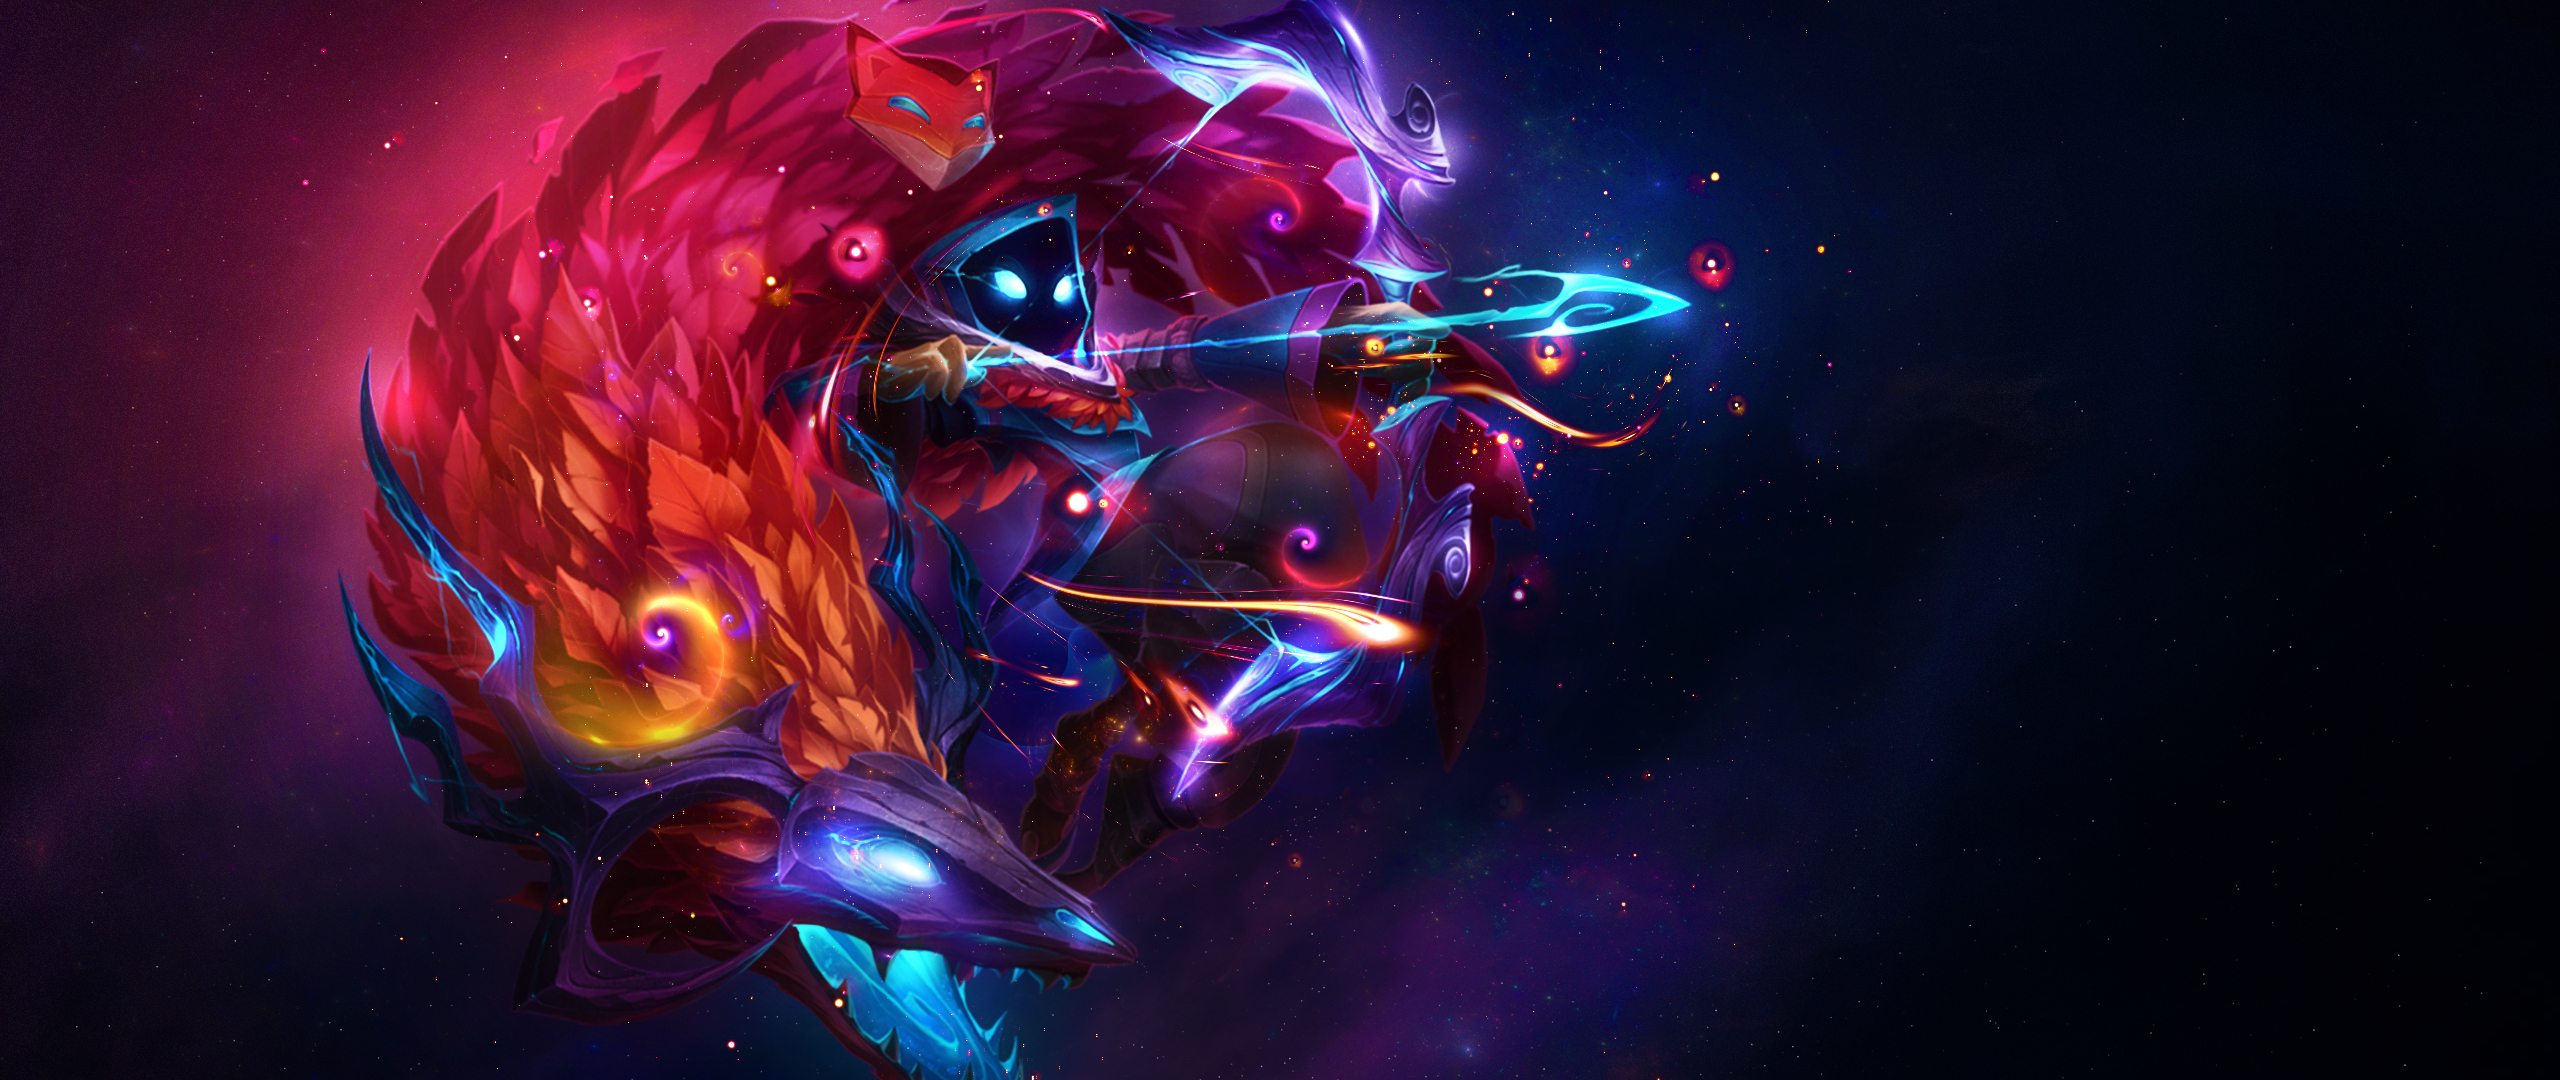 2560x1080 Kindred League Of Legends 2560x1080 Resolution Hd